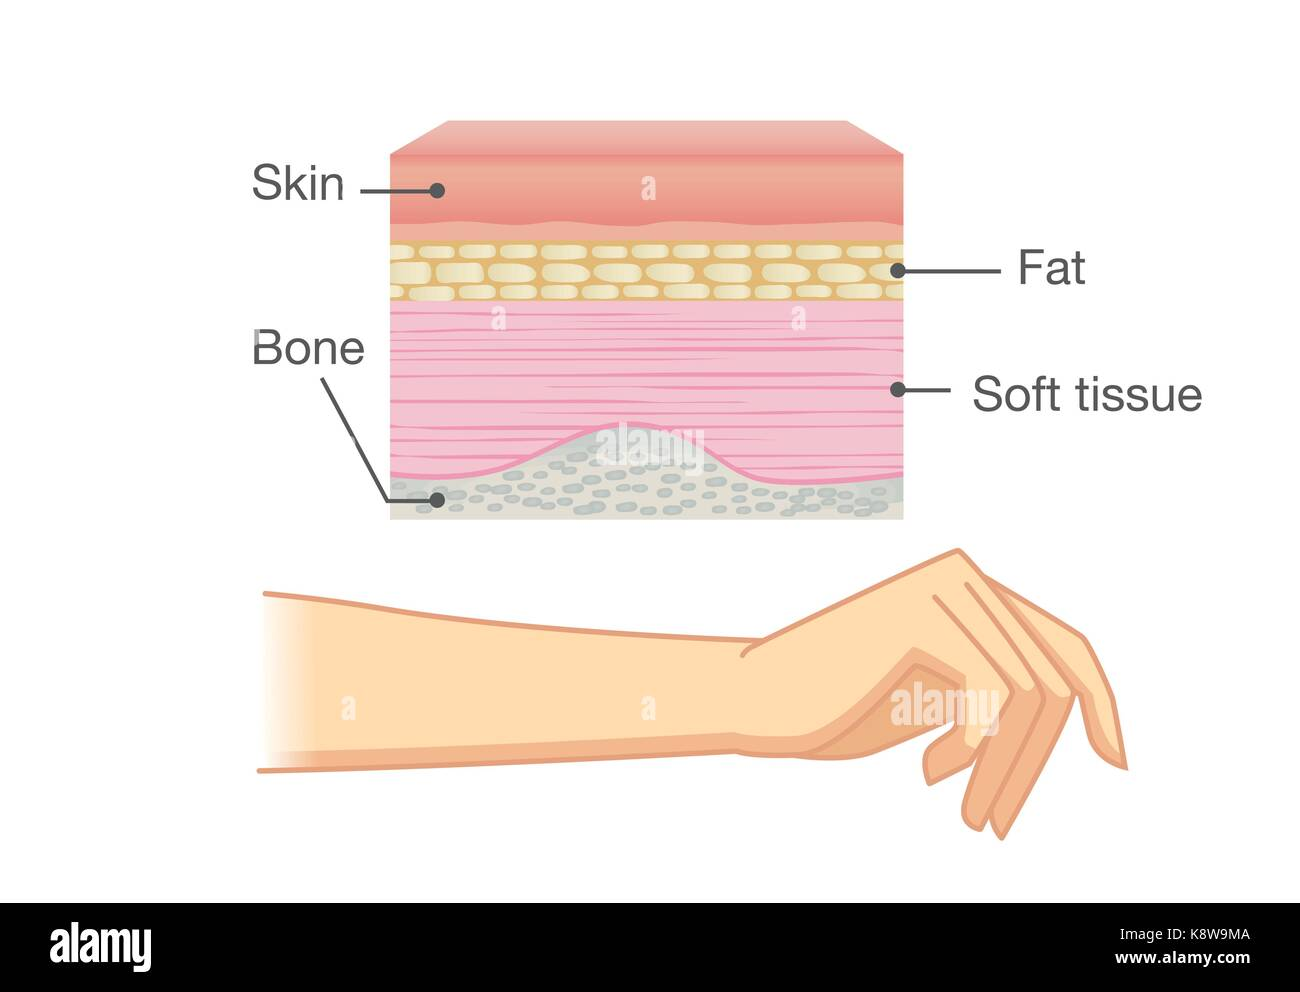 Anatomy of Human Skin layer and arm Stock Vector Art & Illustration ...